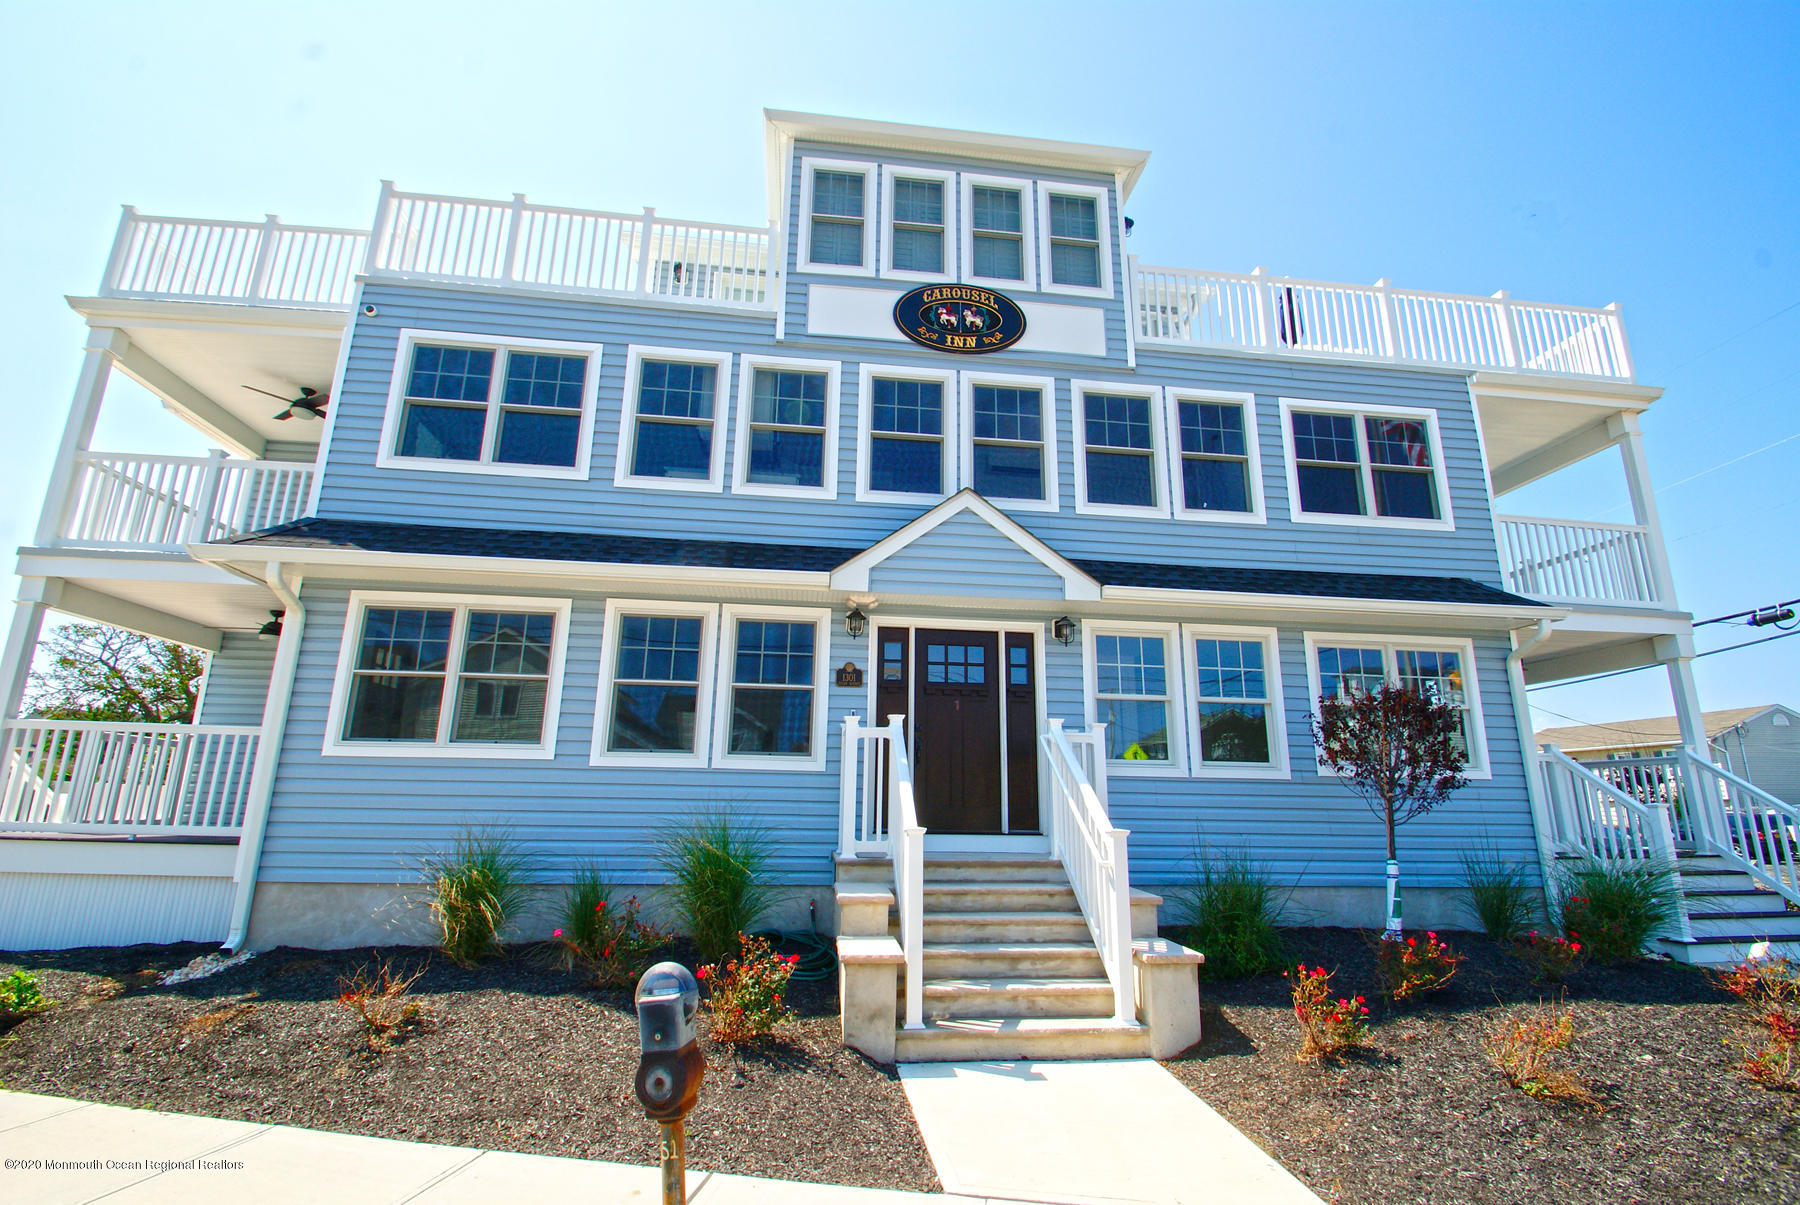 Photo of 1301 Ocean Avenue #4, Point Pleasant Beach, NJ 08742